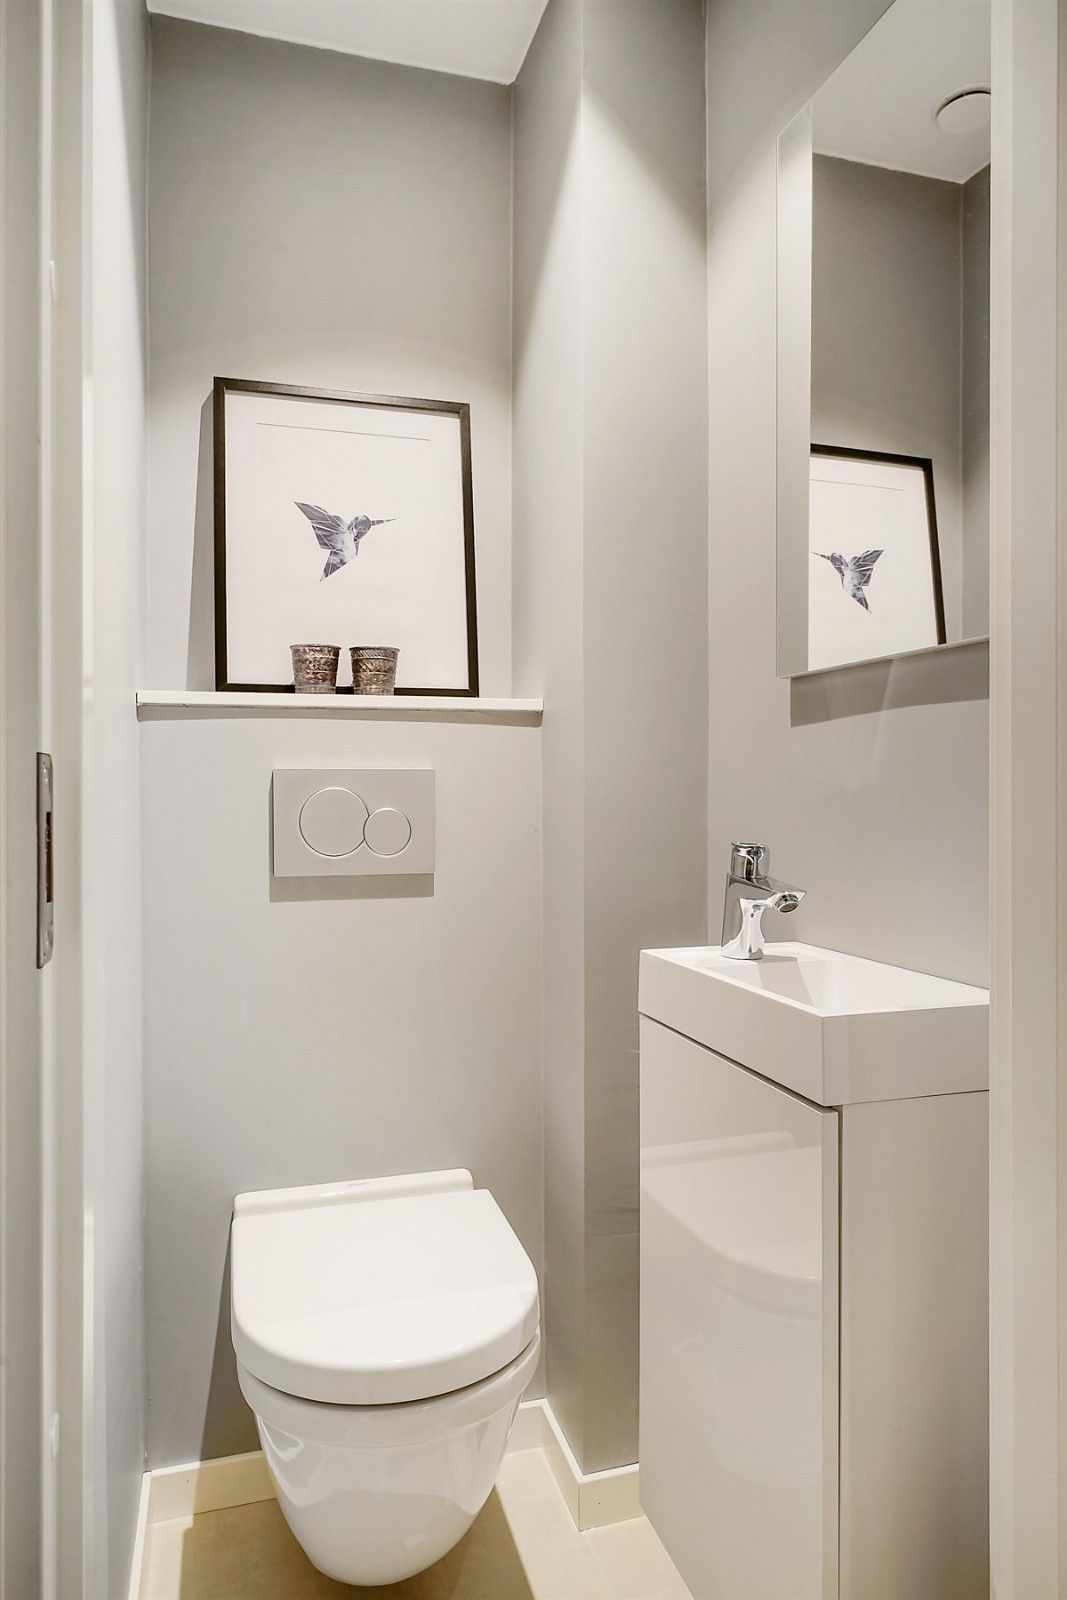 Impress Your Visitors With These 14 Cute Half Bathroom Designs